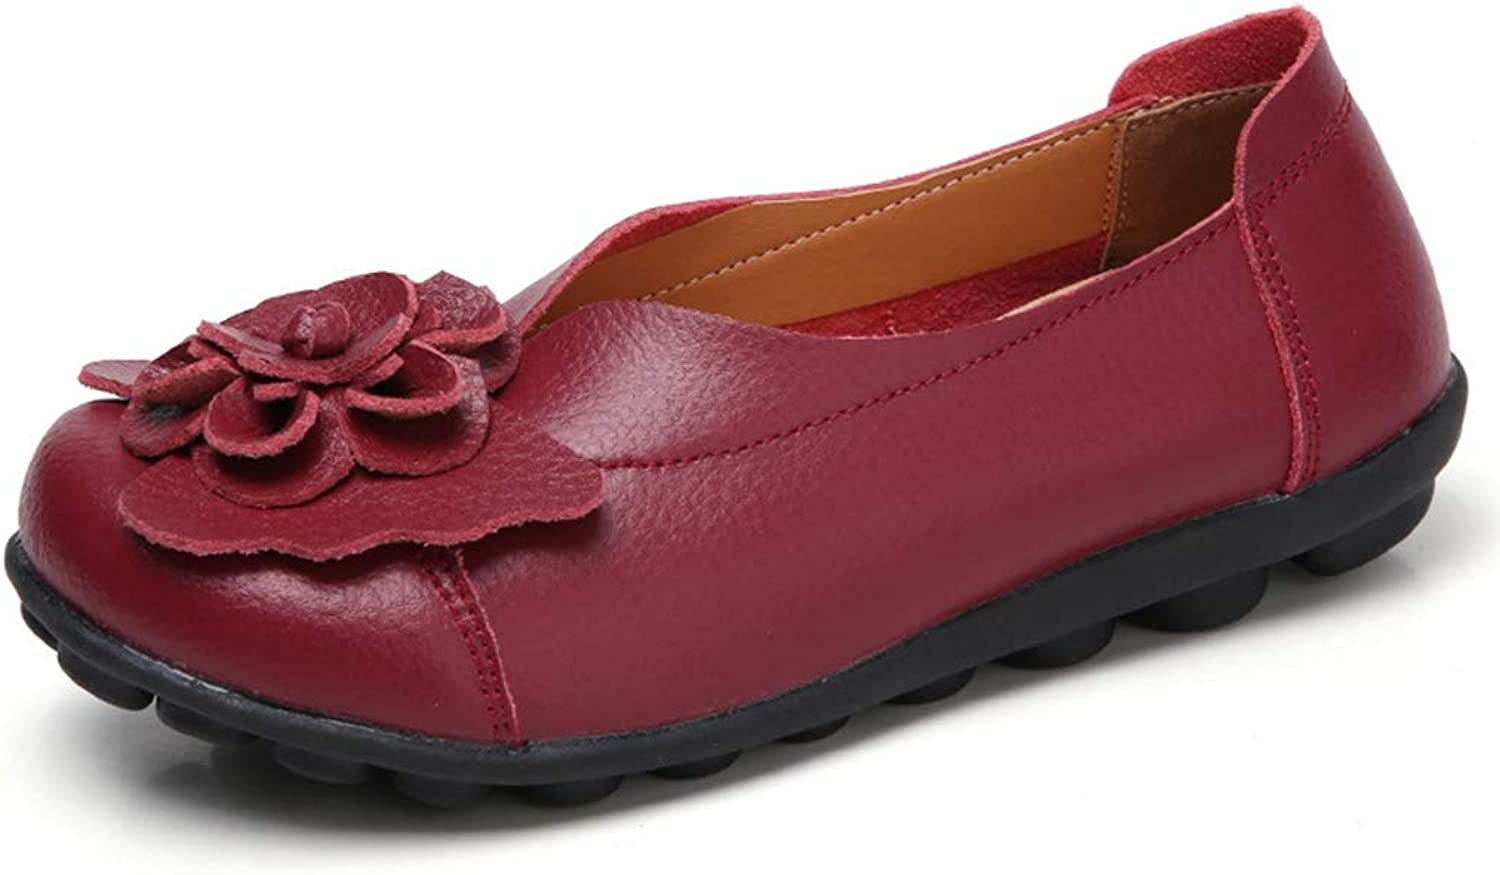 GIY Women's Casual Leather Loafers Comfort Round Toe Flower Driving Moccasins Wild Casual Breathable Flats shoes